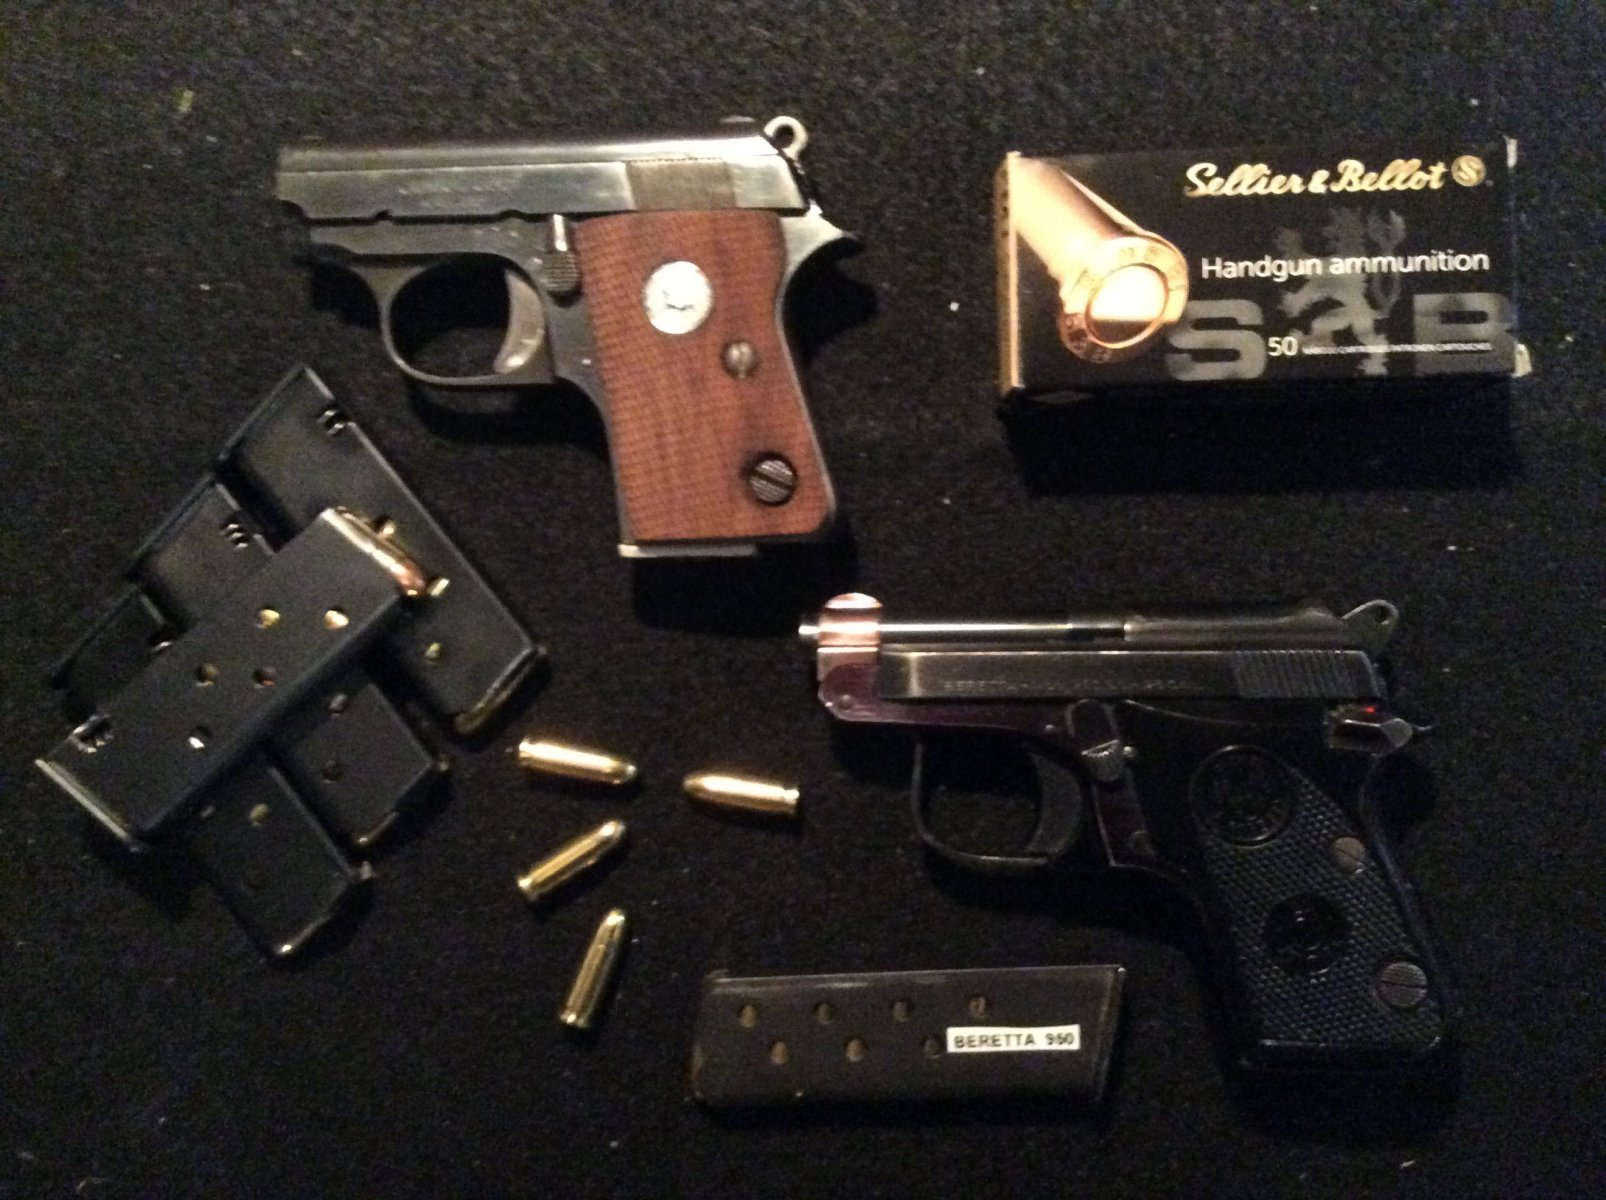 Who else has a 25 ACP gun in their collection?